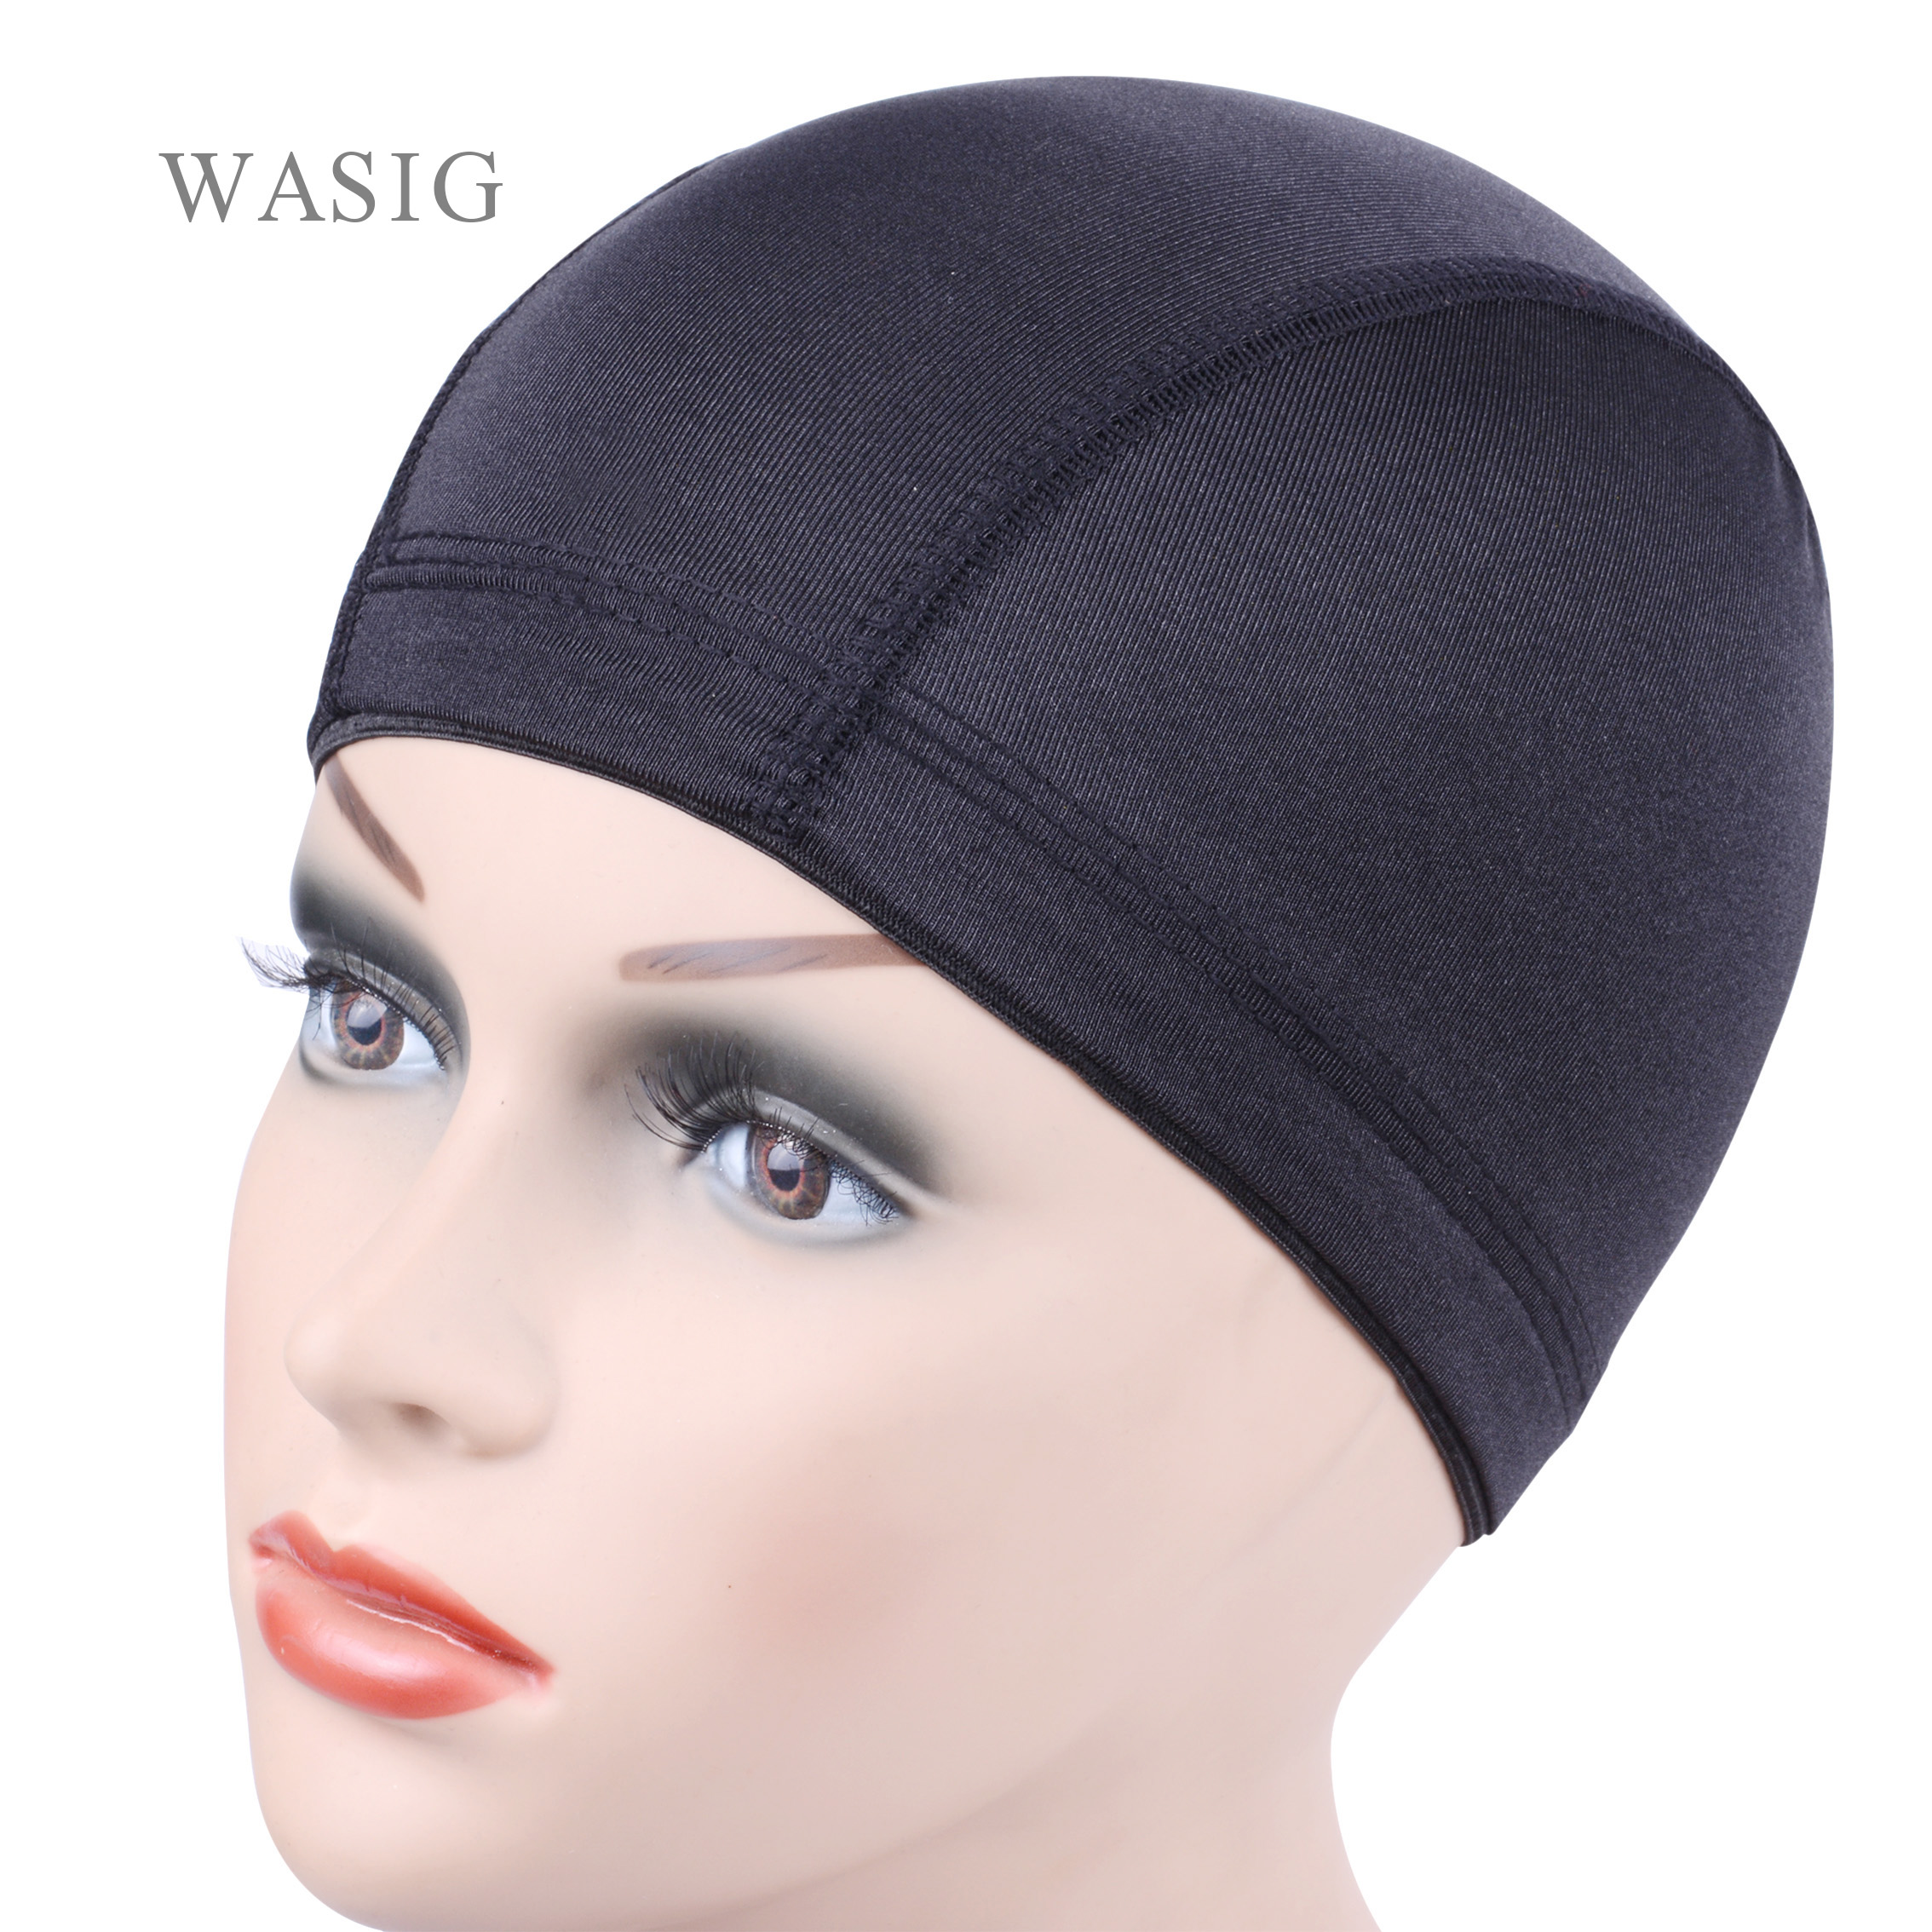 24 Pcs Glueless Hair Net Wig Liner Cheap Wig Caps For Making Wigs Spandex Net Elastic Dome Wig Cap